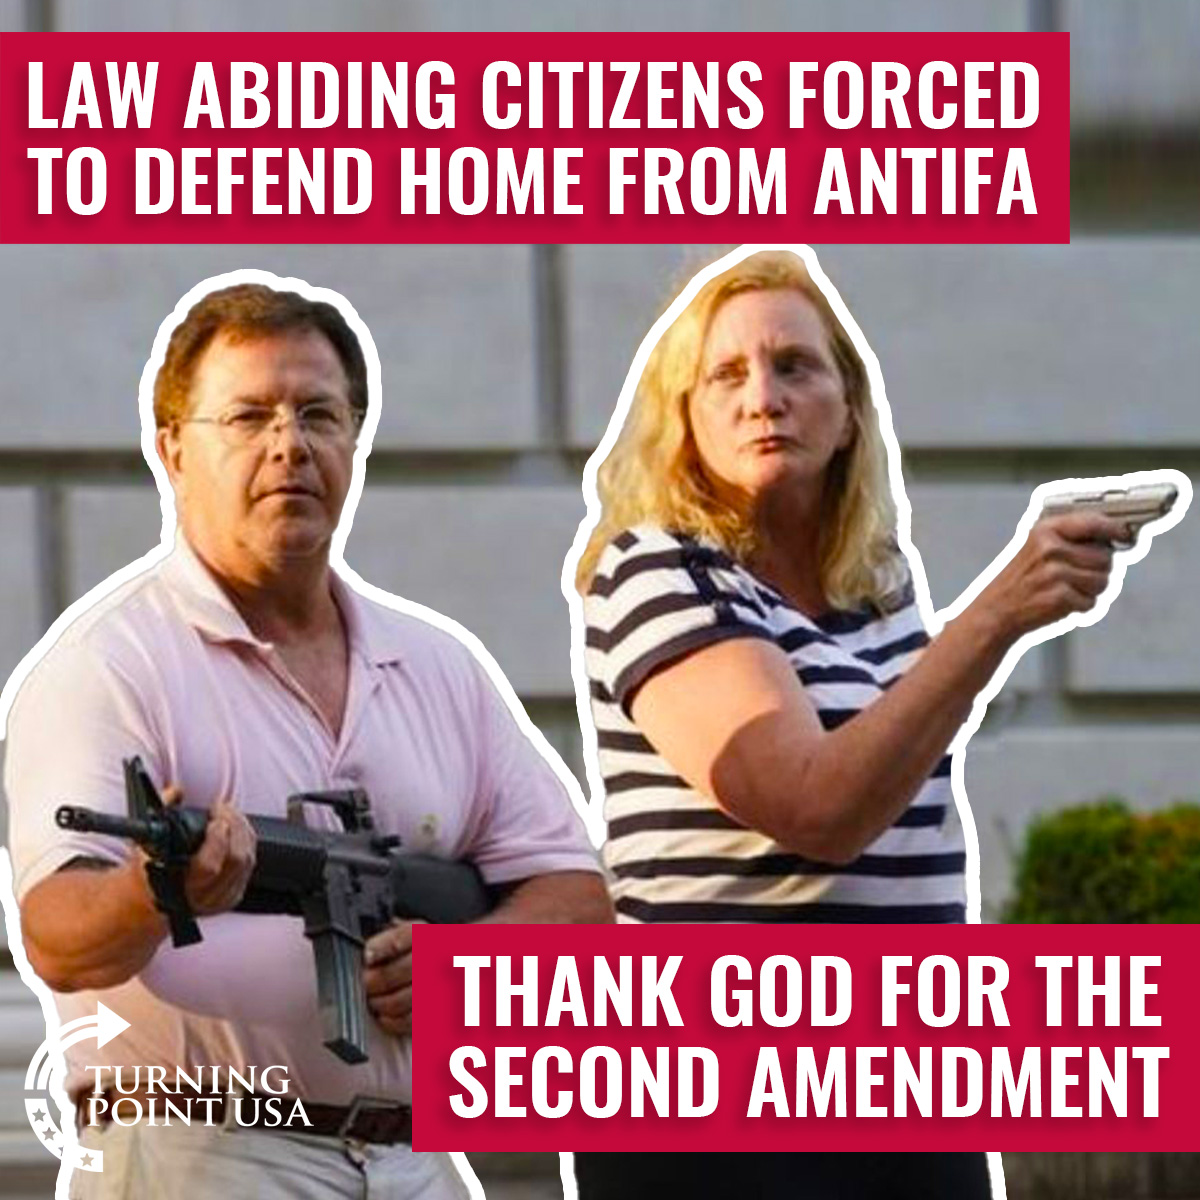 MUST WATCH! Insane Protesters Get A Wake Up Call When This Couple Actually Defends Their Home... Thank God For The 2A! 🇺🇸 #GunsSaveLives